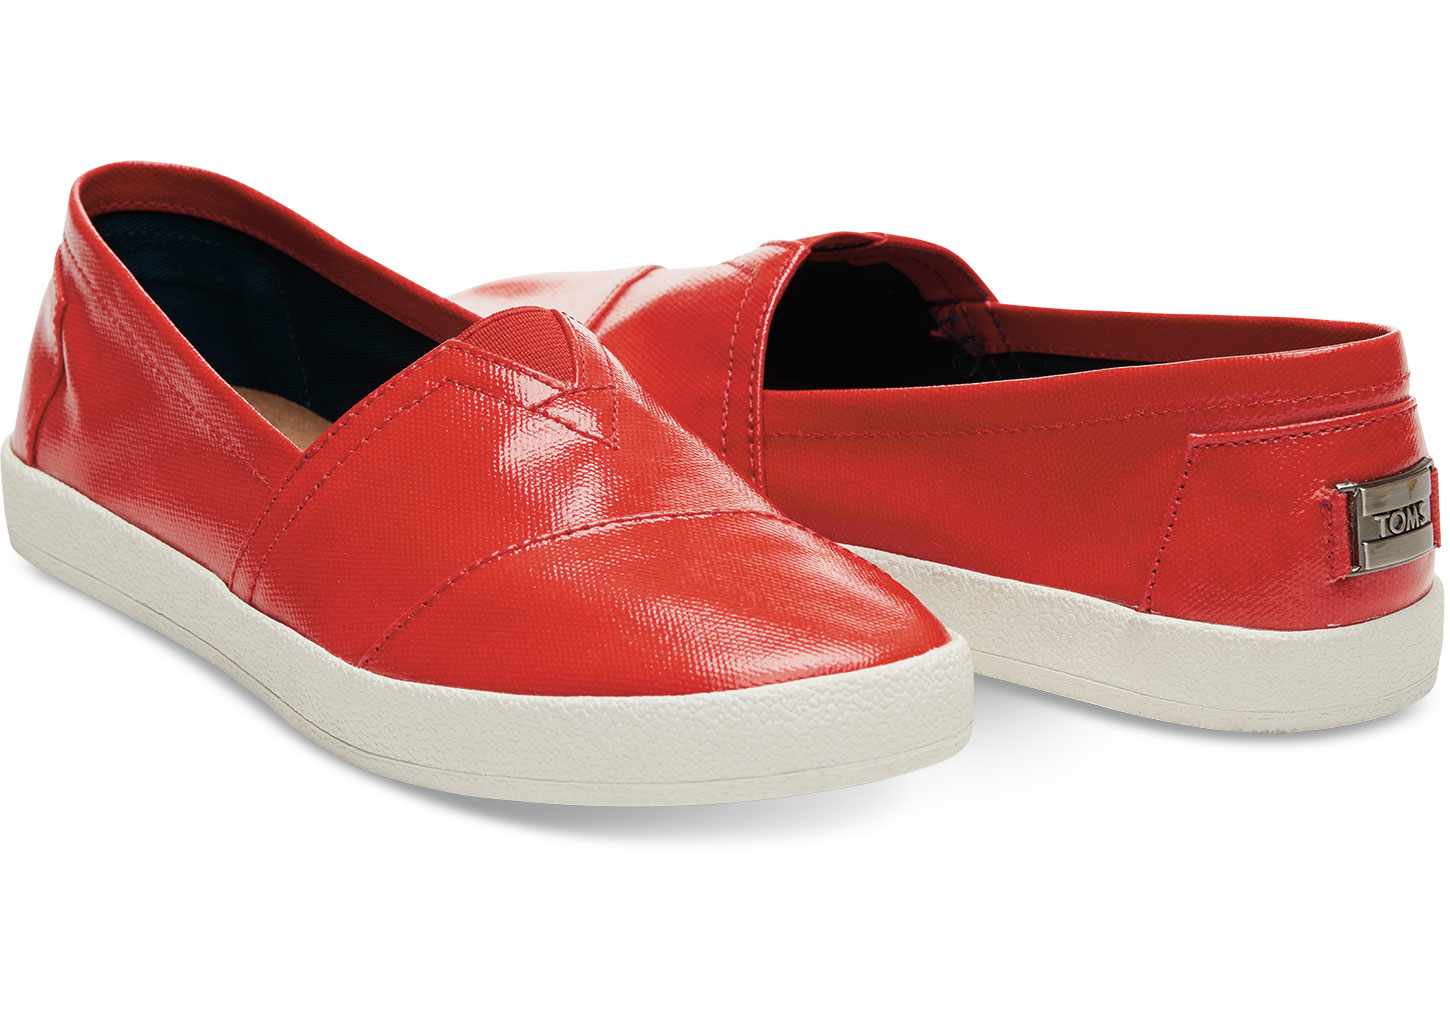 Toms Rubber Shoes For Women